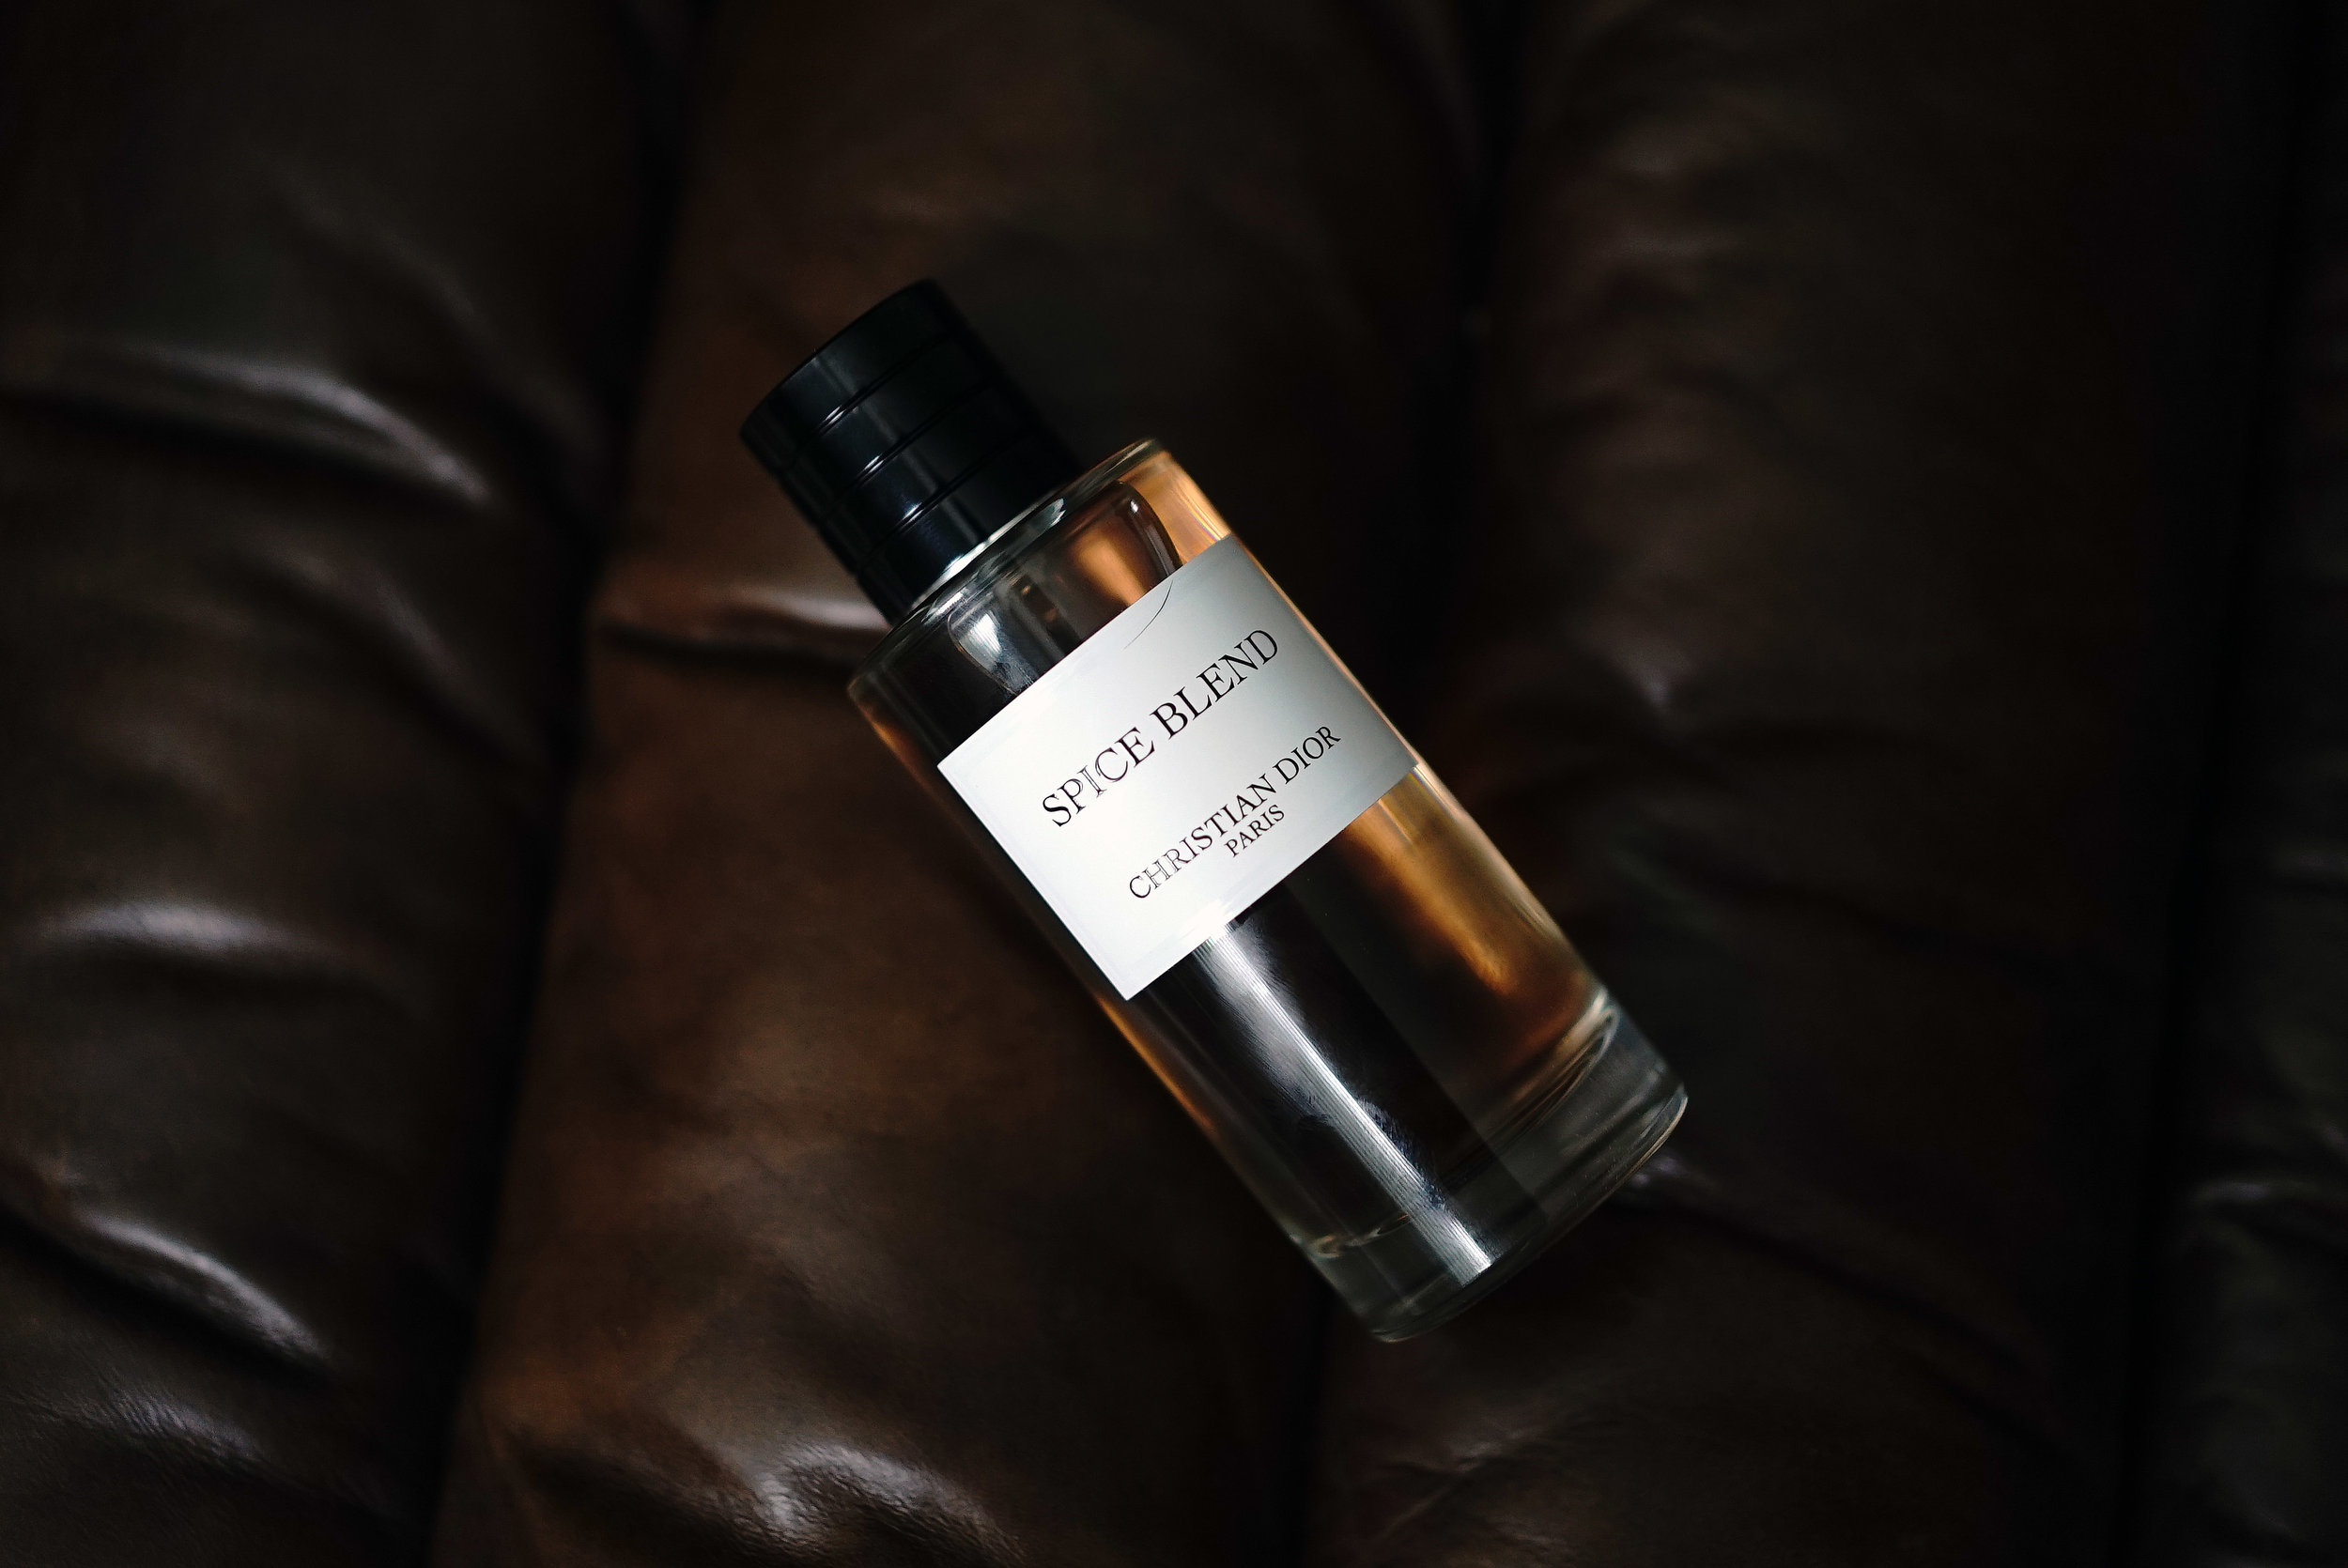 Spice Blend By Maison Christian Dior Fragrance Review The All Rounder We Ve Been Waiting For Men S Style Blog